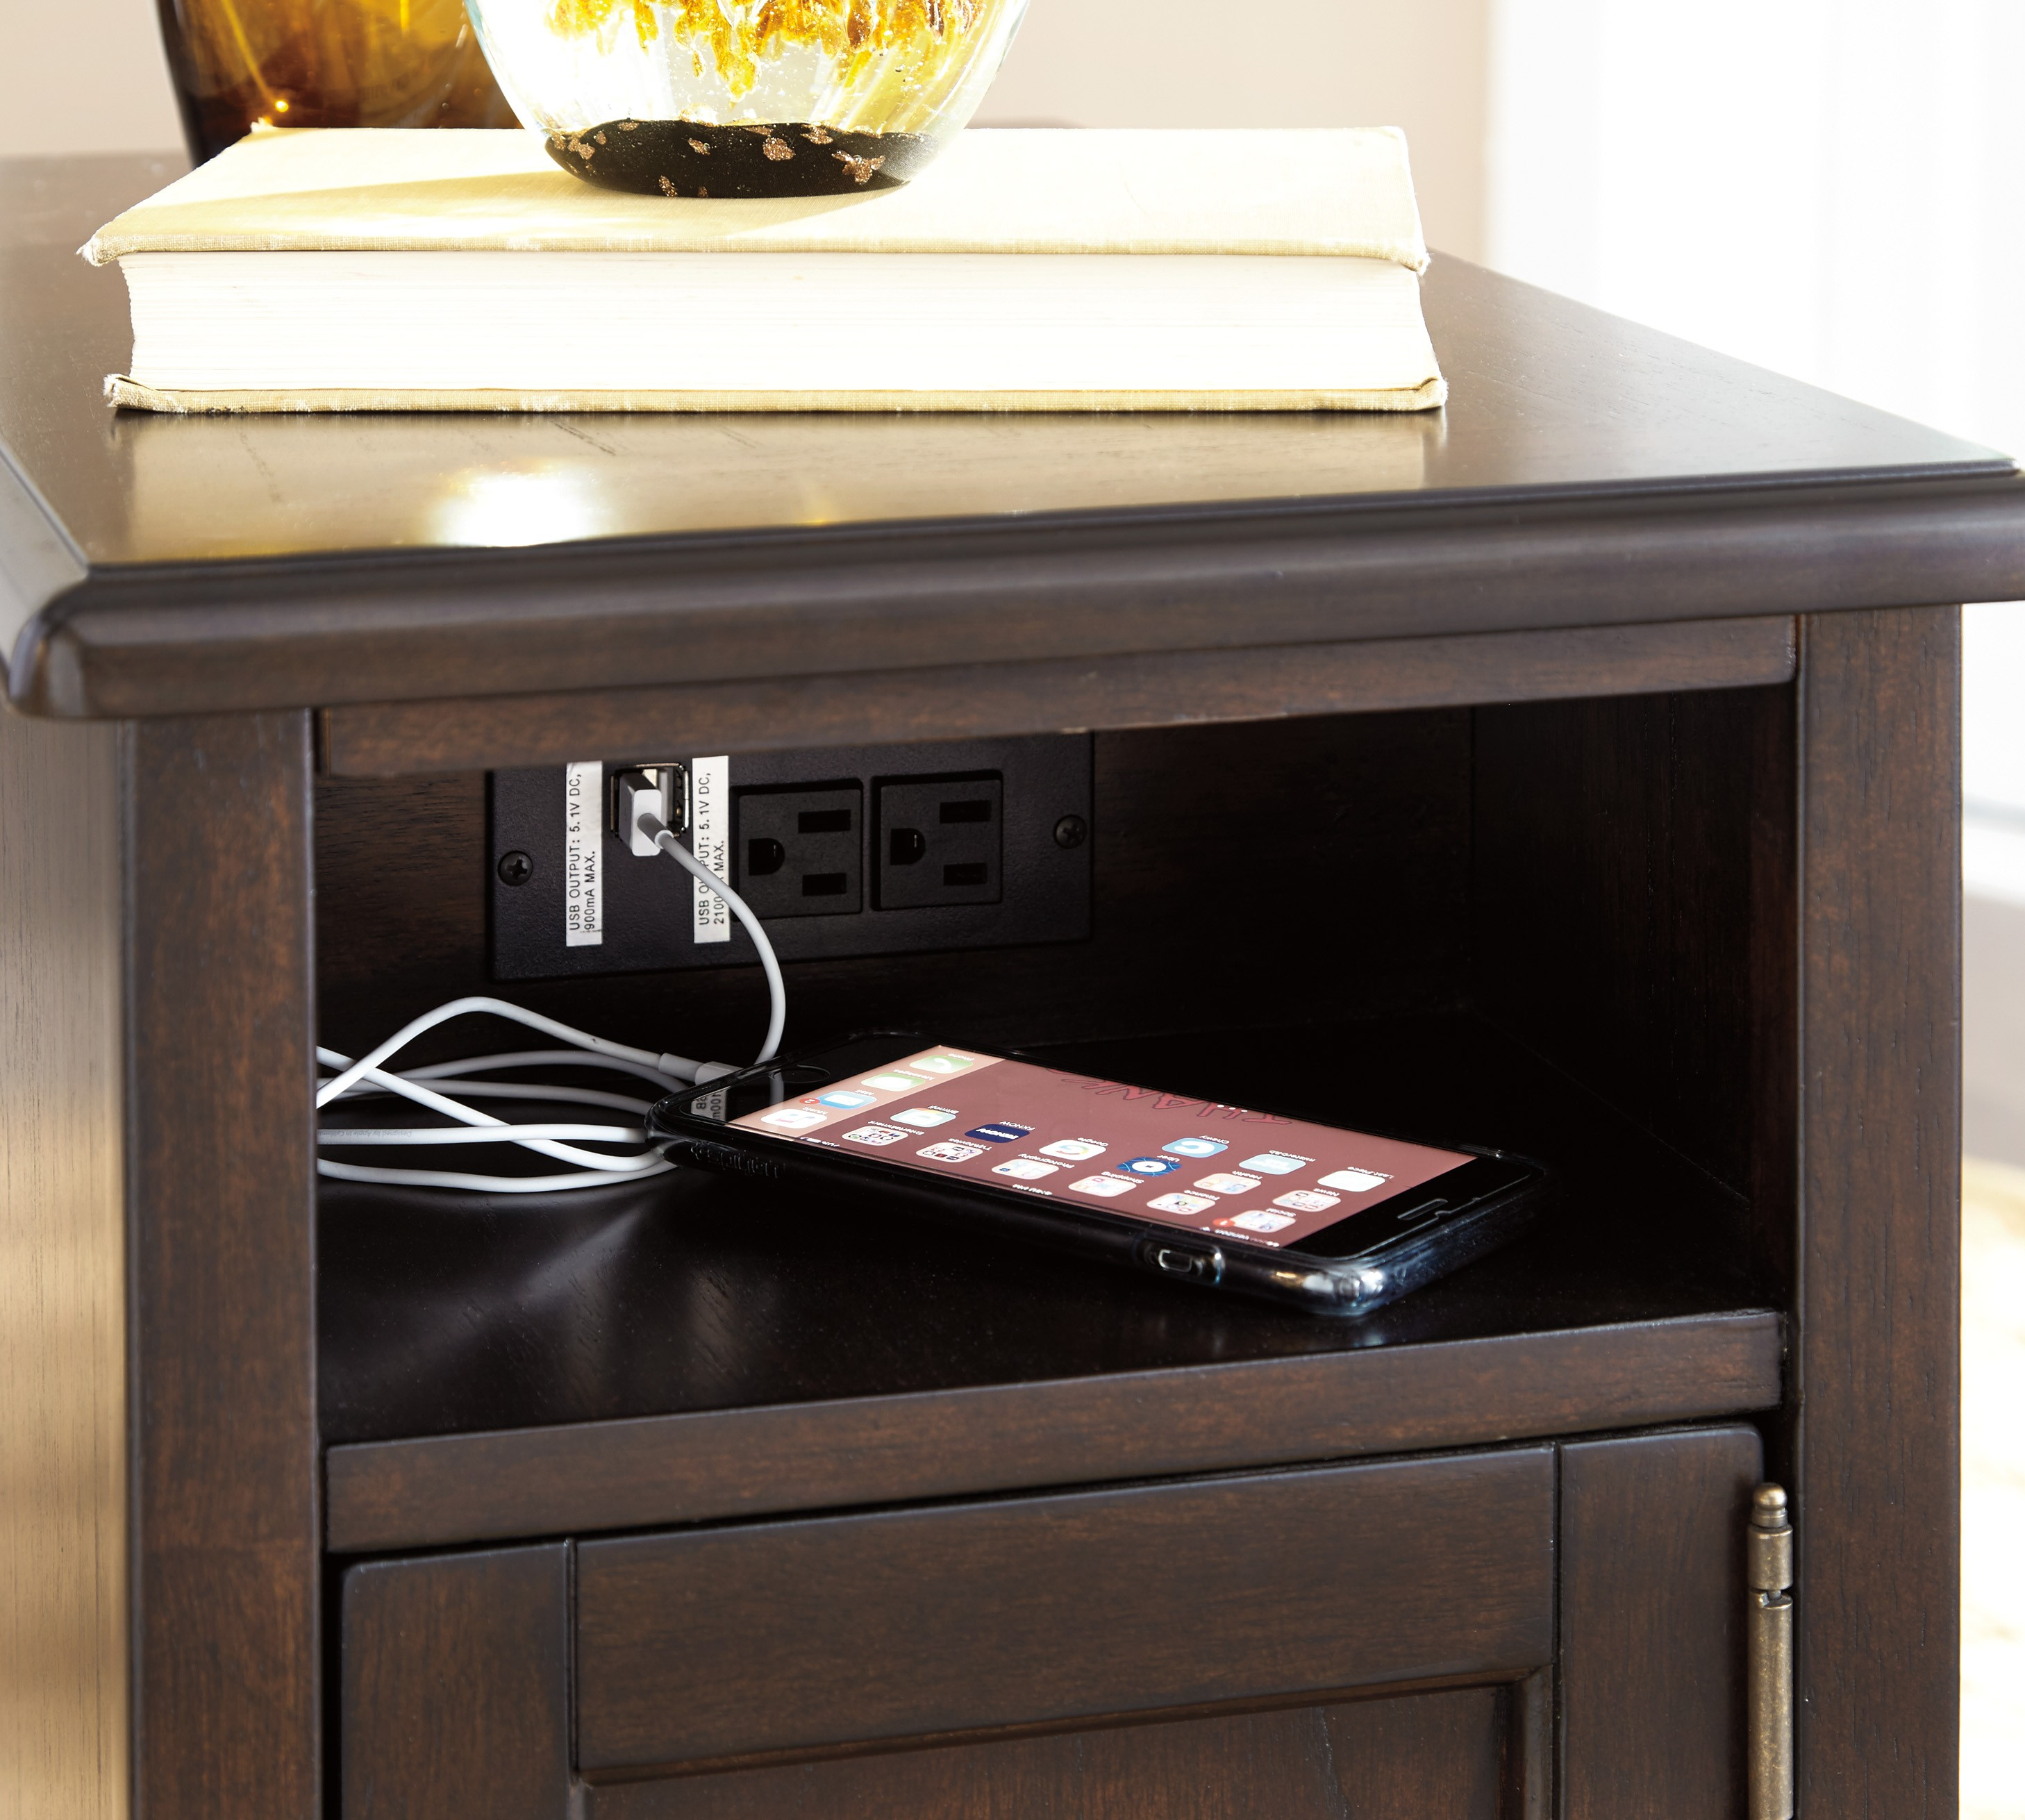 end table coffee with usb ports accent tables charging station small built vanderbilt nightstand teal home decor queen anne badcock website black lace runner ethan allen windsor